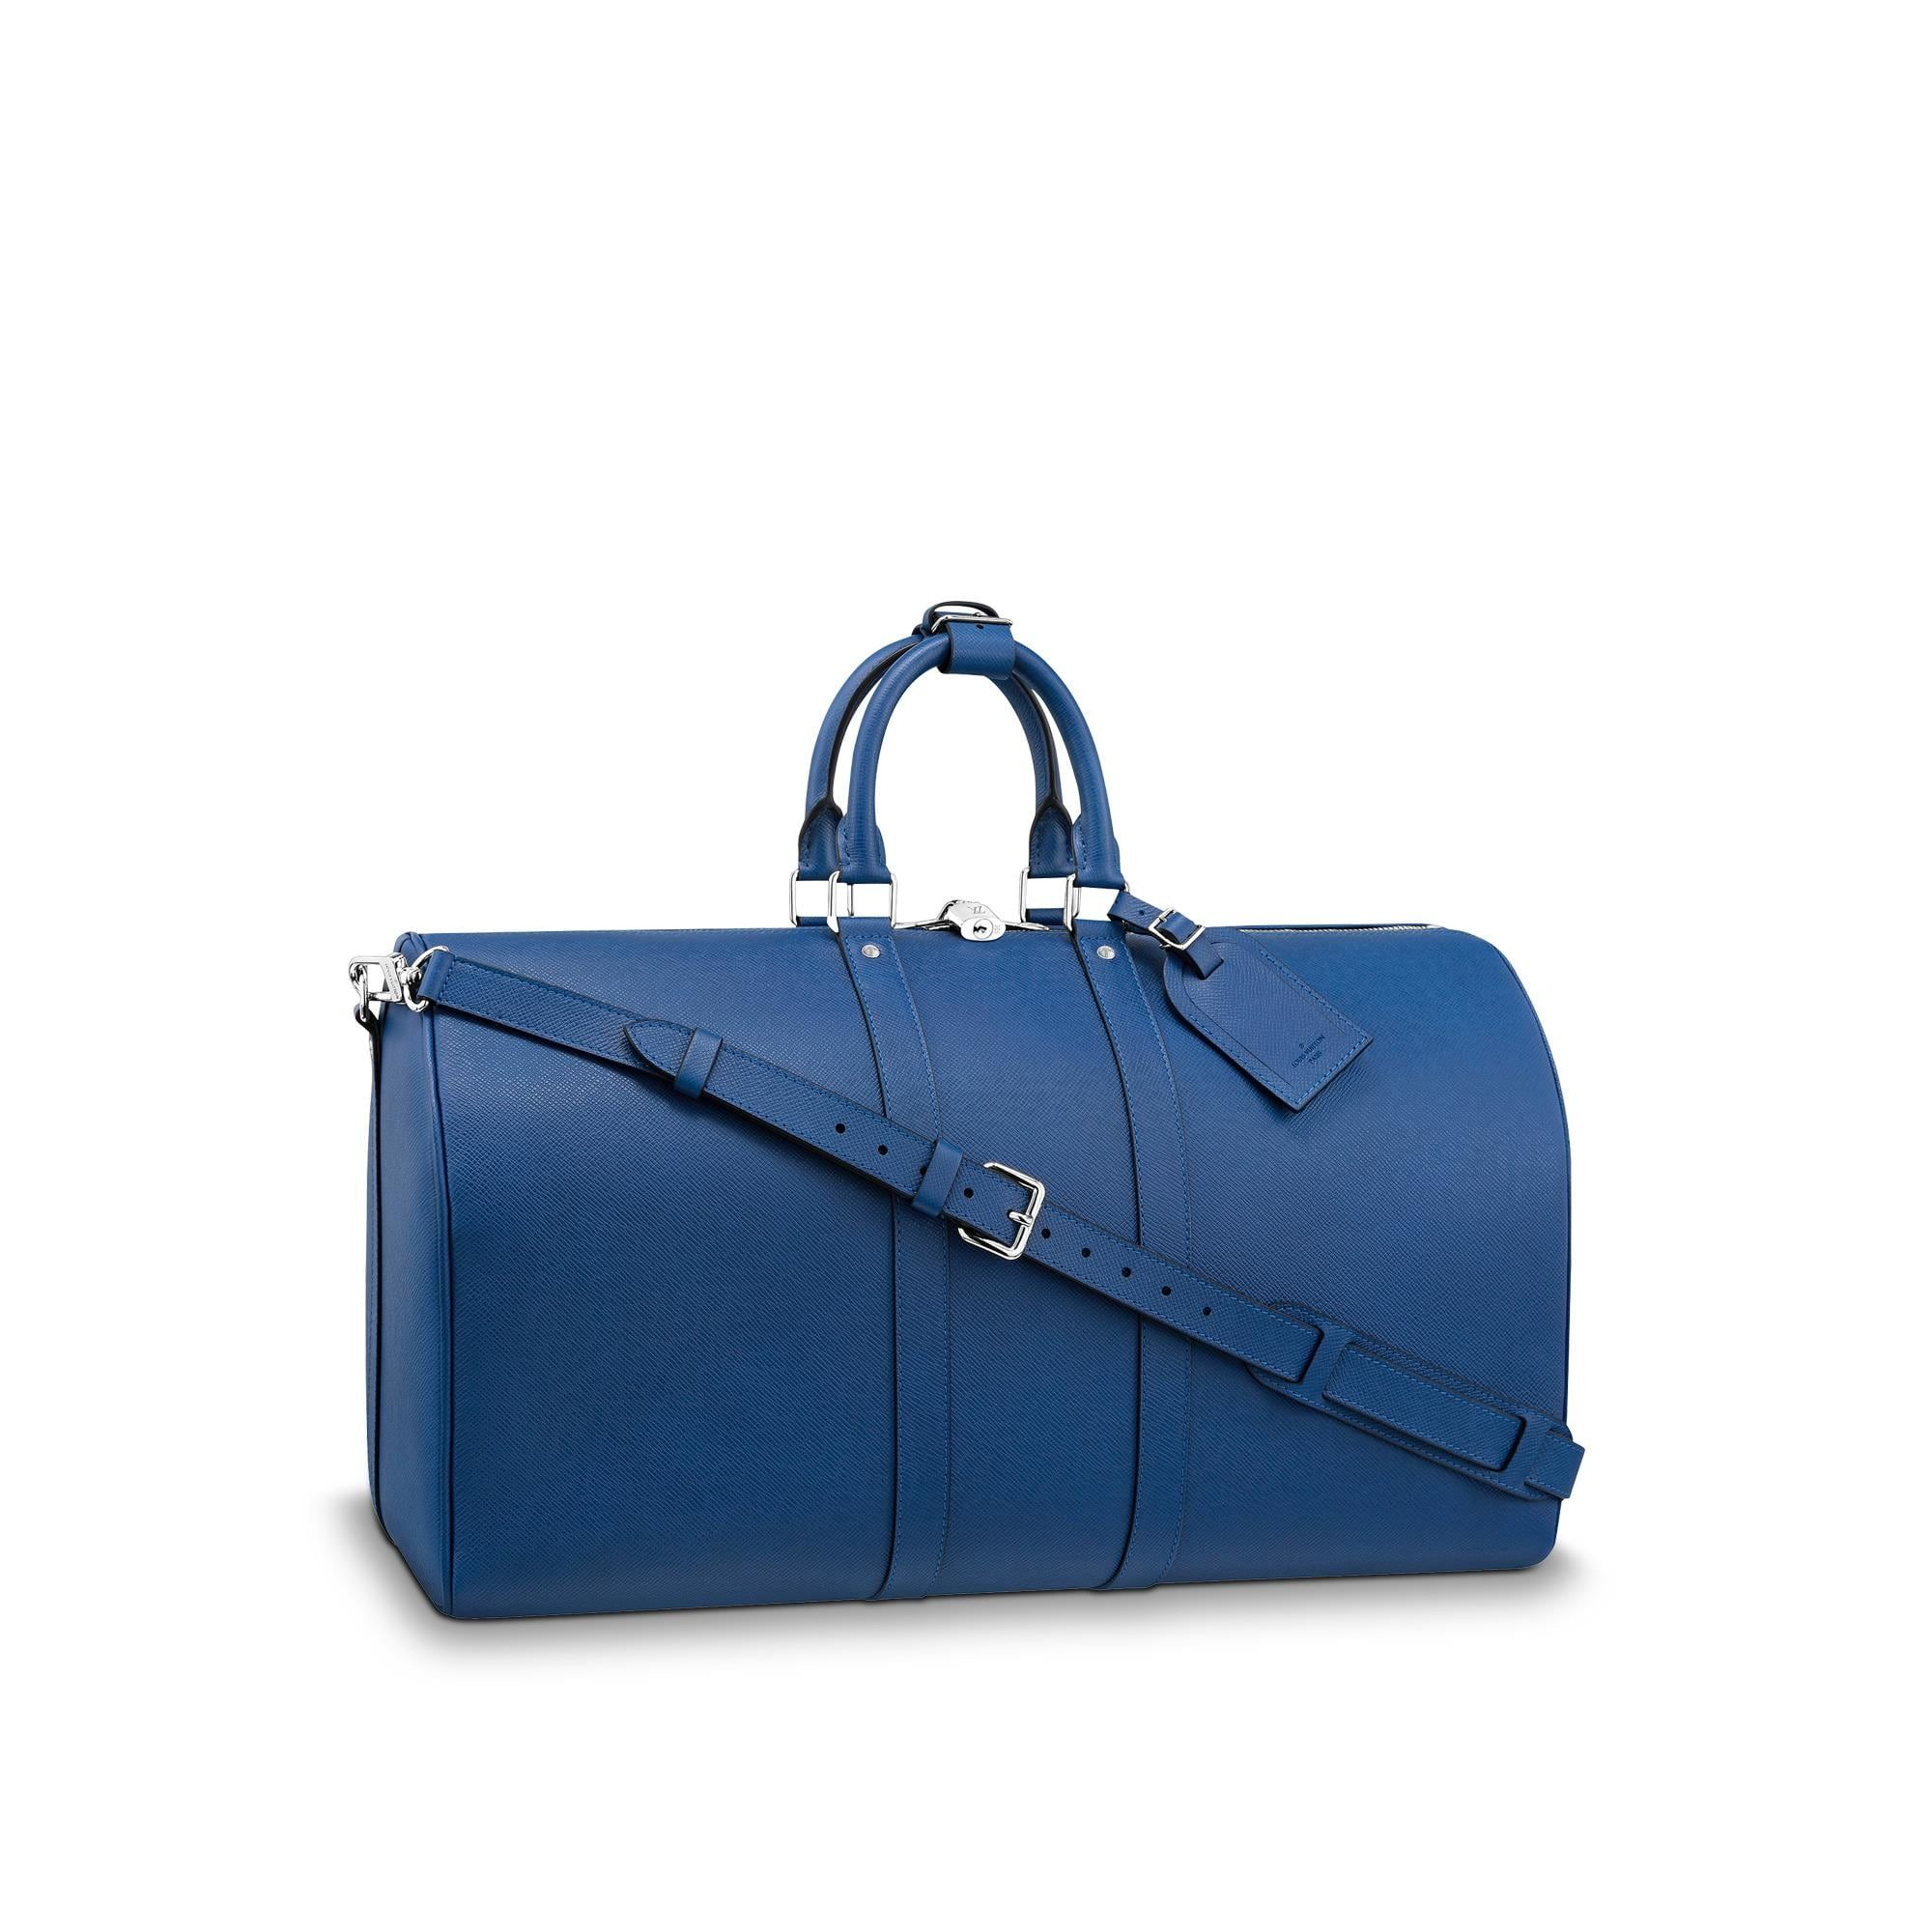 175edfa0e921 Keepall Bandoulière 55 in 2019